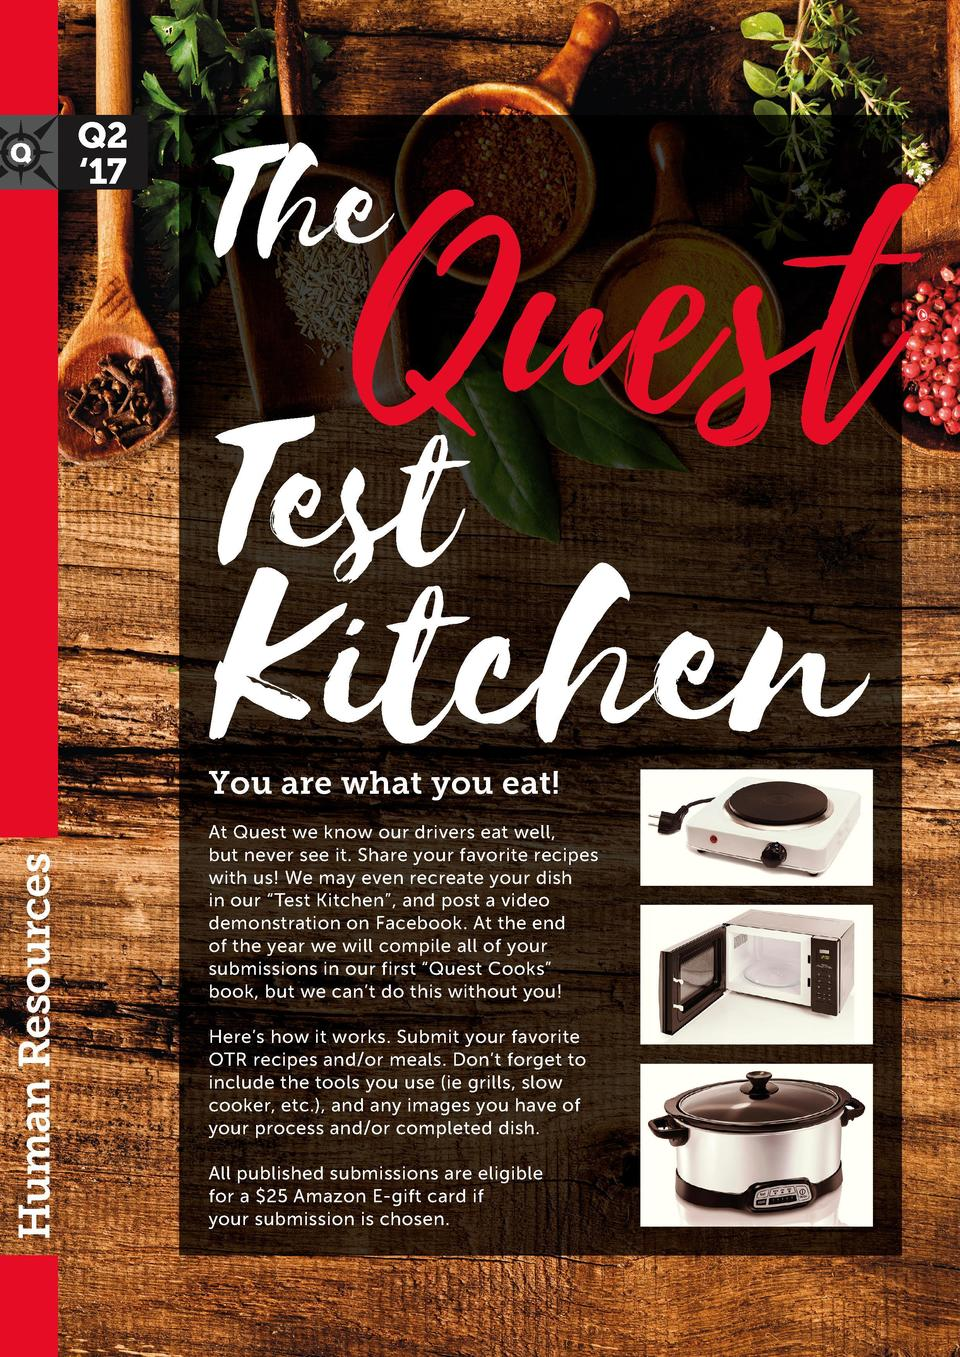 Q2    17  Quest  The  Test  Kitchen  Human Resources  You are what you eat   At Quest we know our drivers eat well, but ne...